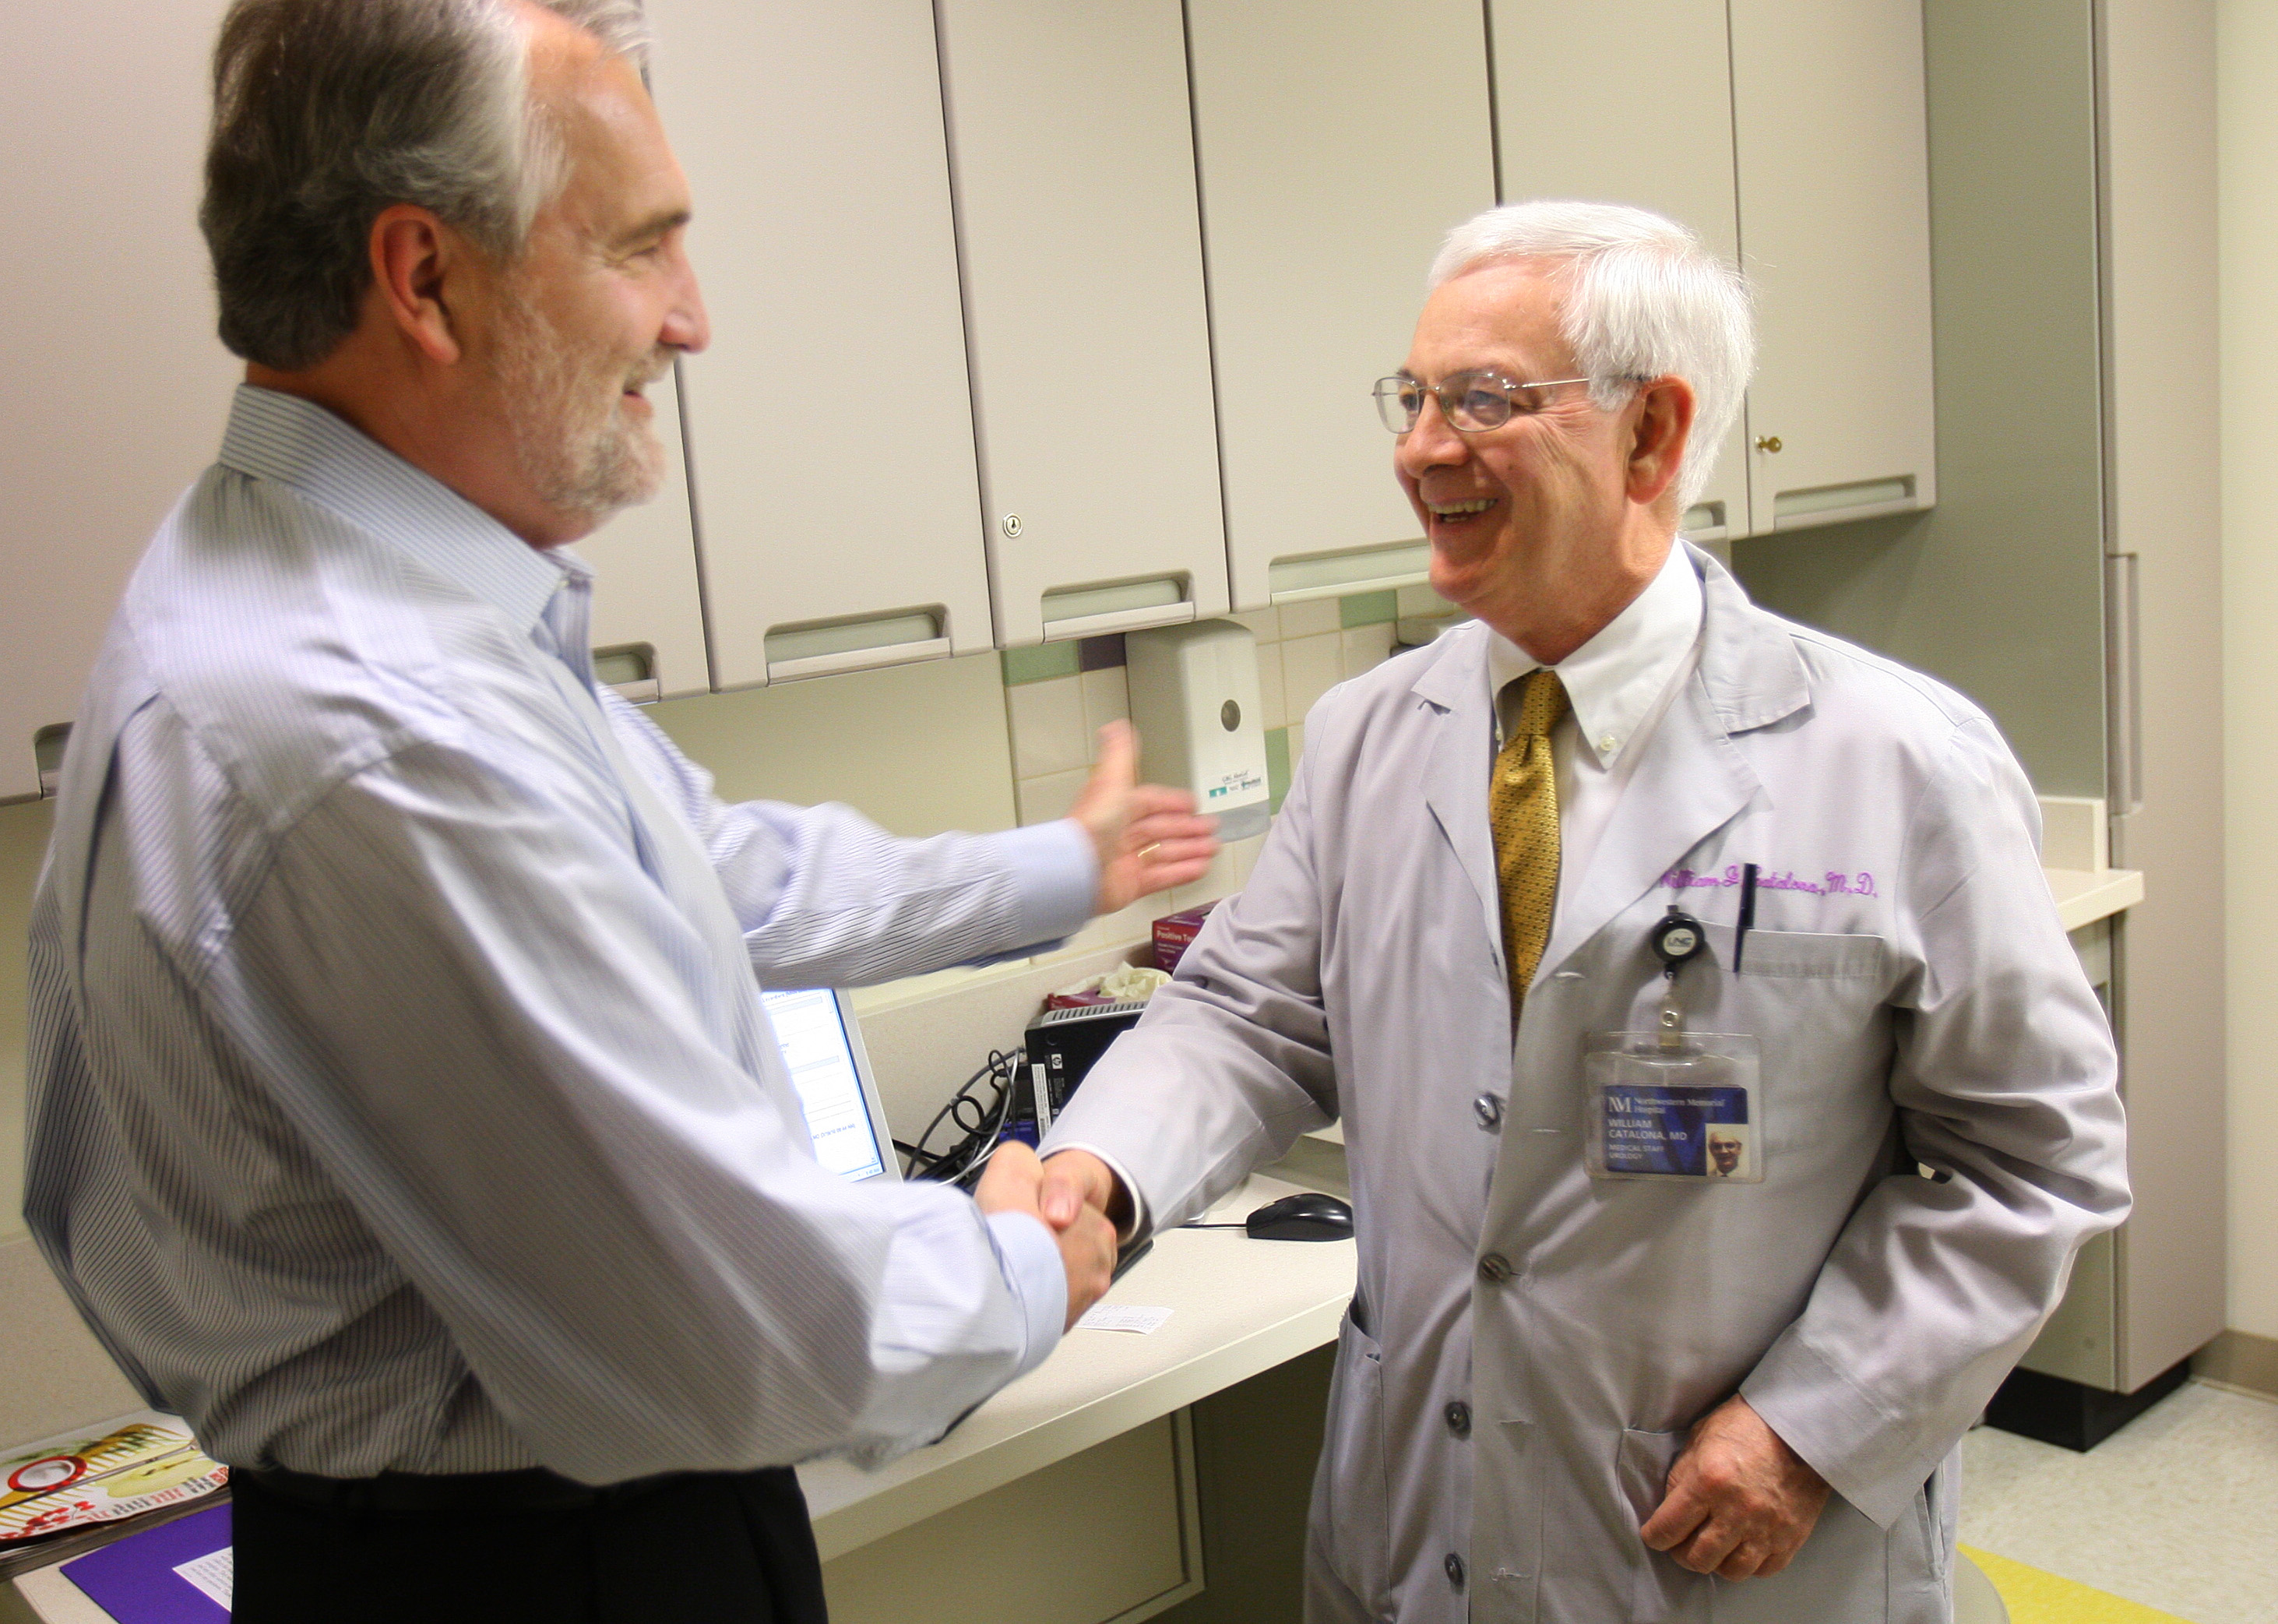 Dr. William Catalona, right, director of the prostate cancer program at Northwestern Memorial Hospital, speaks to patient Richard LaVerdiere on March ...